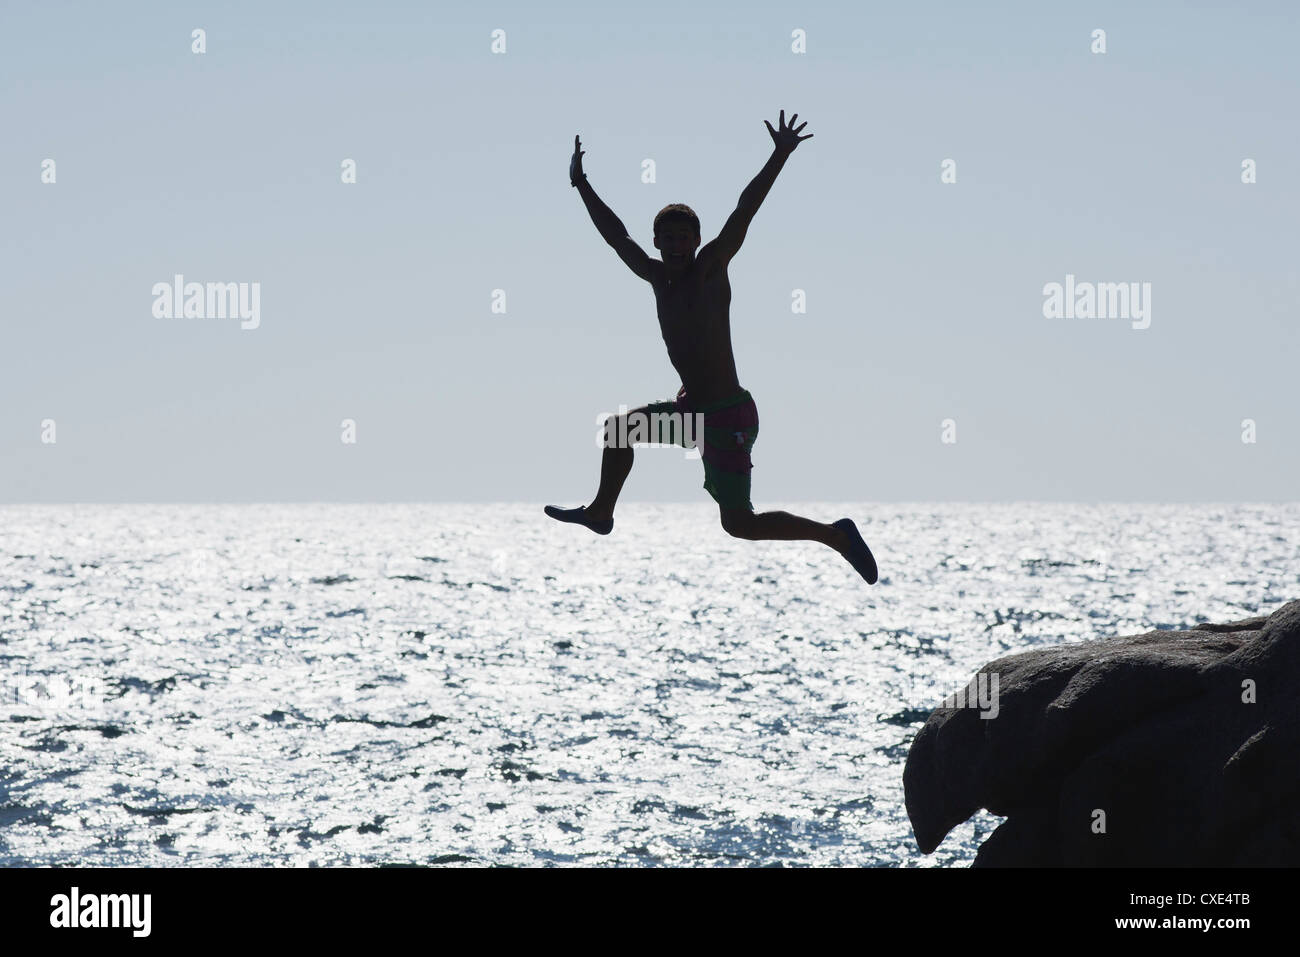 Teenage boy jumping into ocean, silhouette - Stock Image